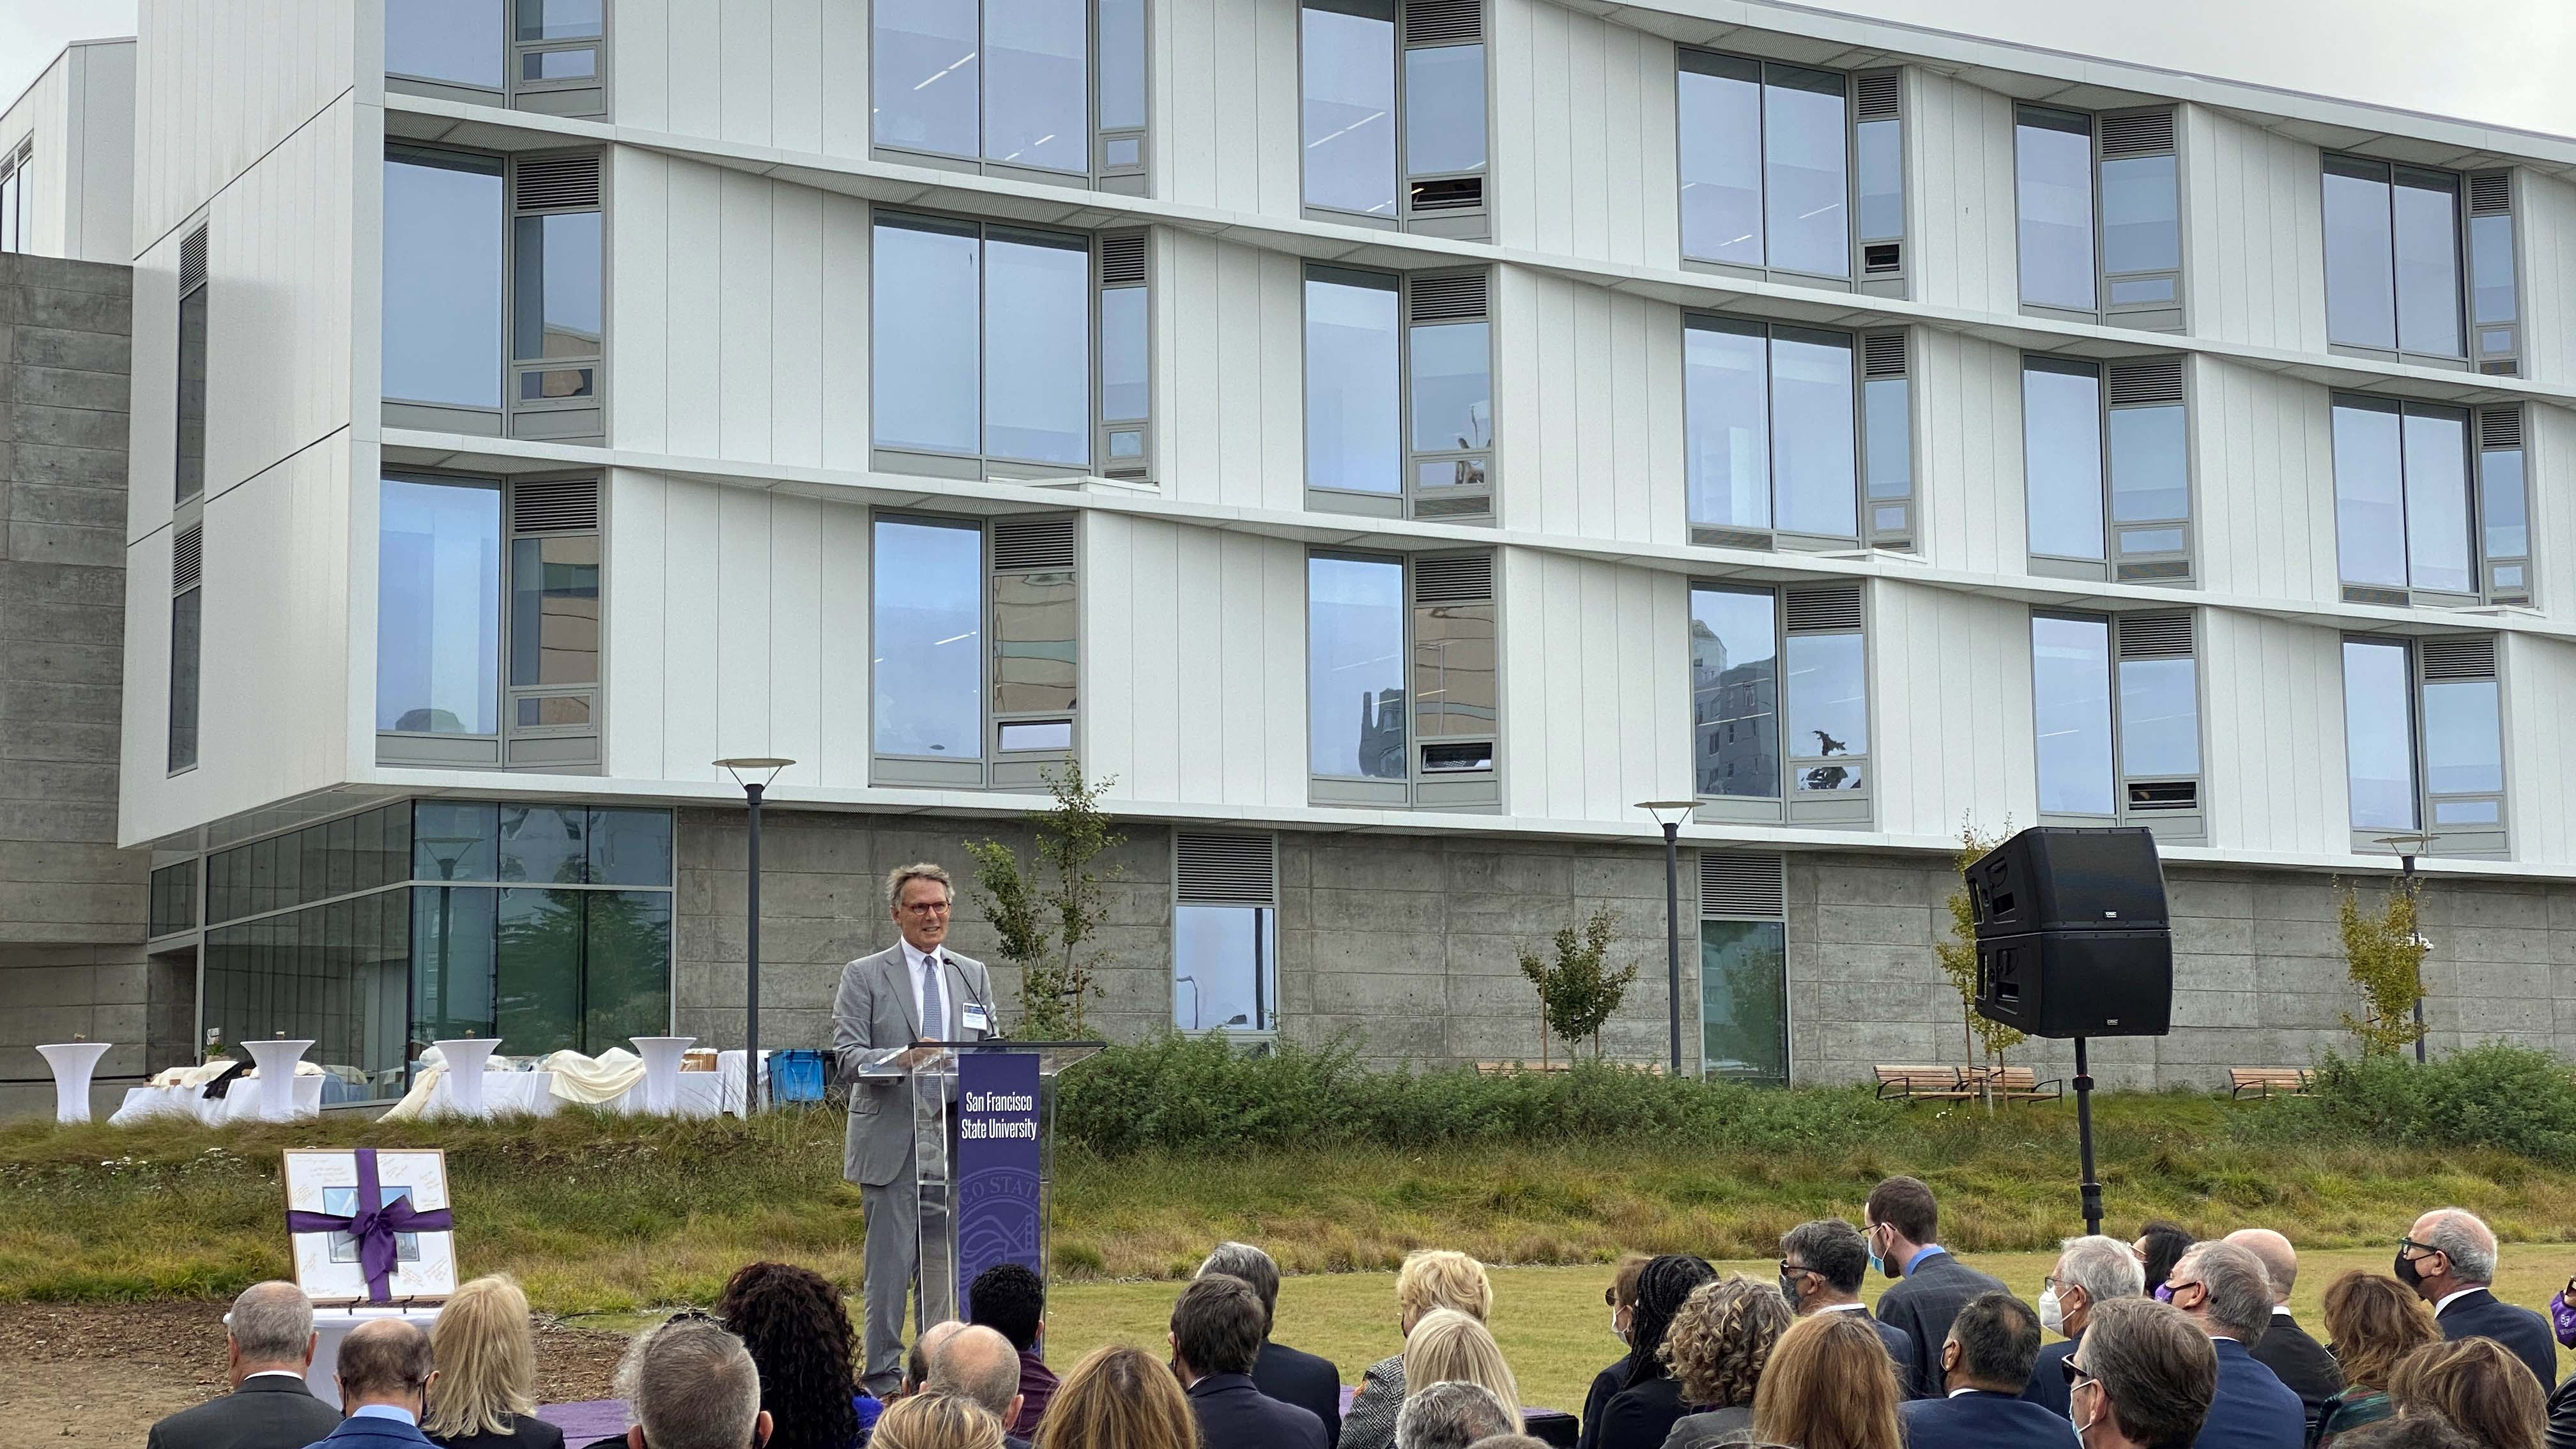 Mark Cavagnero of Mark Cavagnero Associates, the architectural firm that designed Marcus Hall, speaks at the building's dedication ceremony